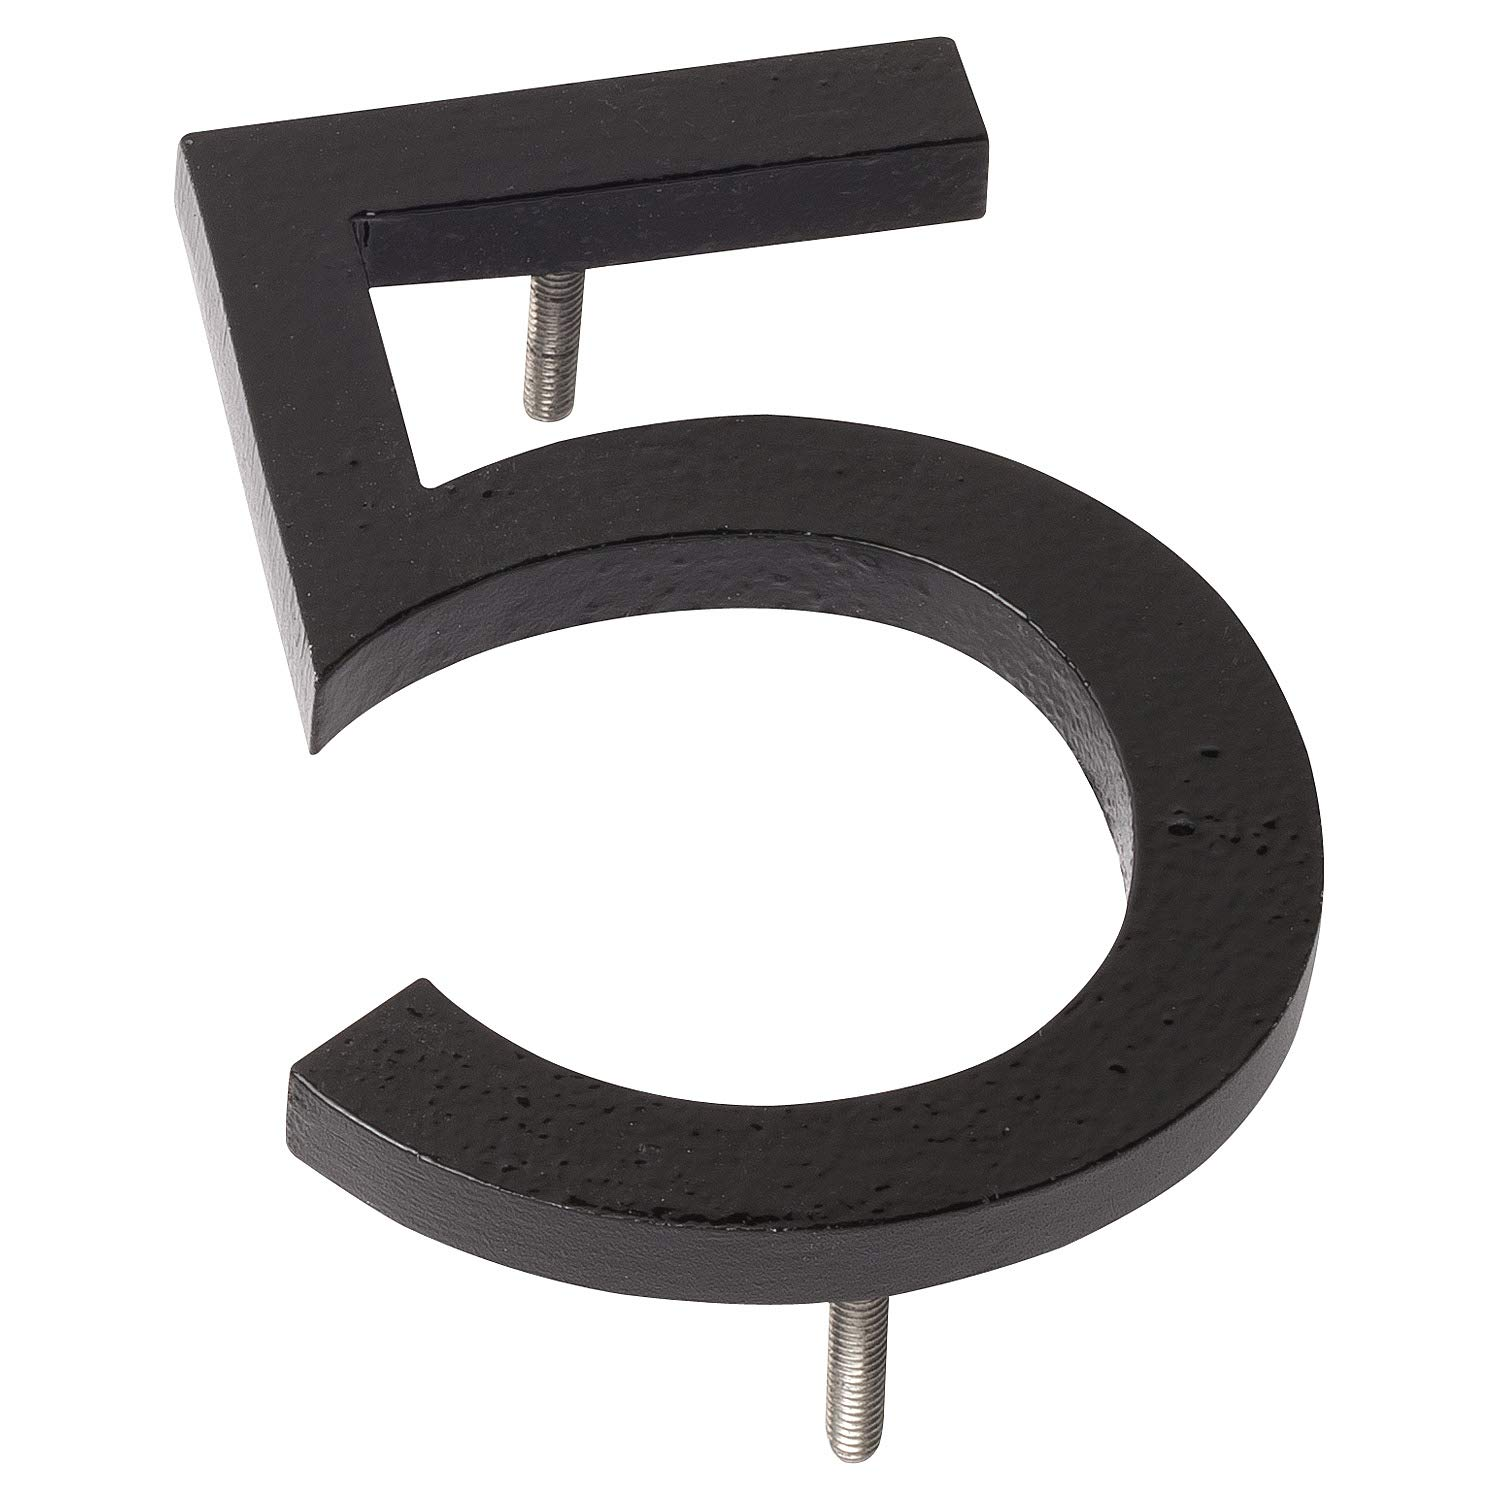 Montague Metal Products MHN-12-5-F-BK1 Floating House Number, 12'' x 8.88'' x 0.375'' Black by Montague Metal Products (Image #1)